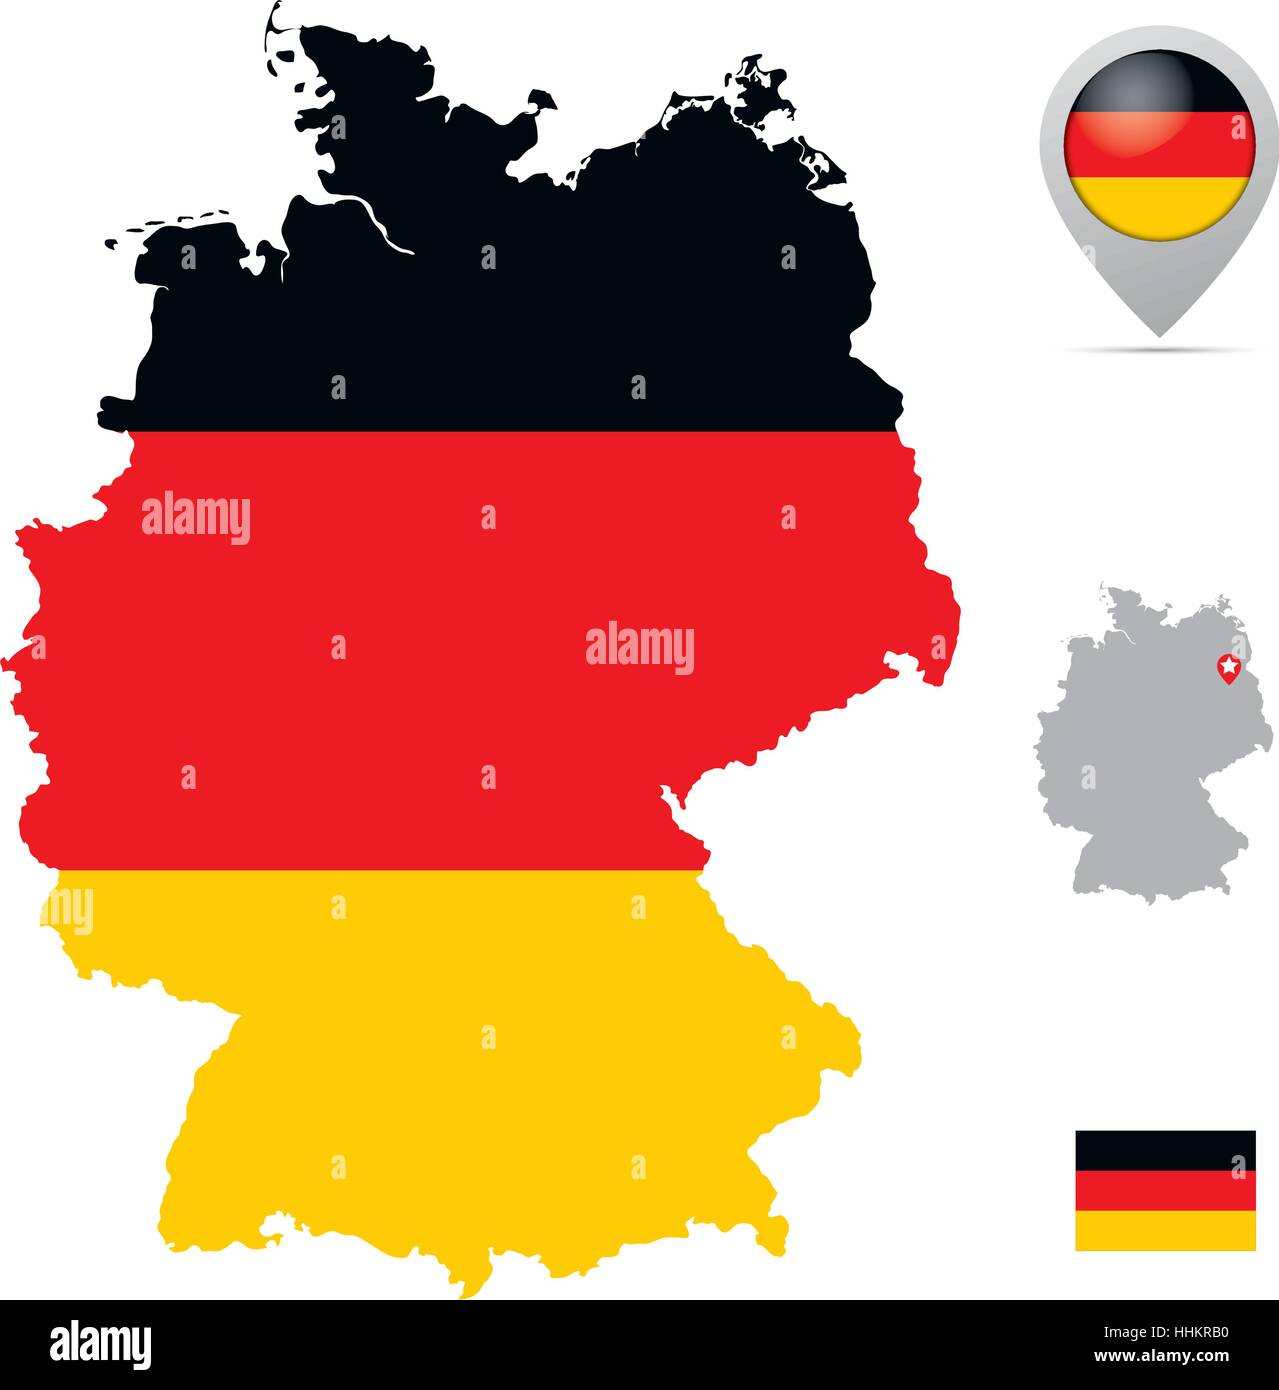 Capital Of Germany Map.Germany Map In National Flag Colors Flag Marker And Location Of